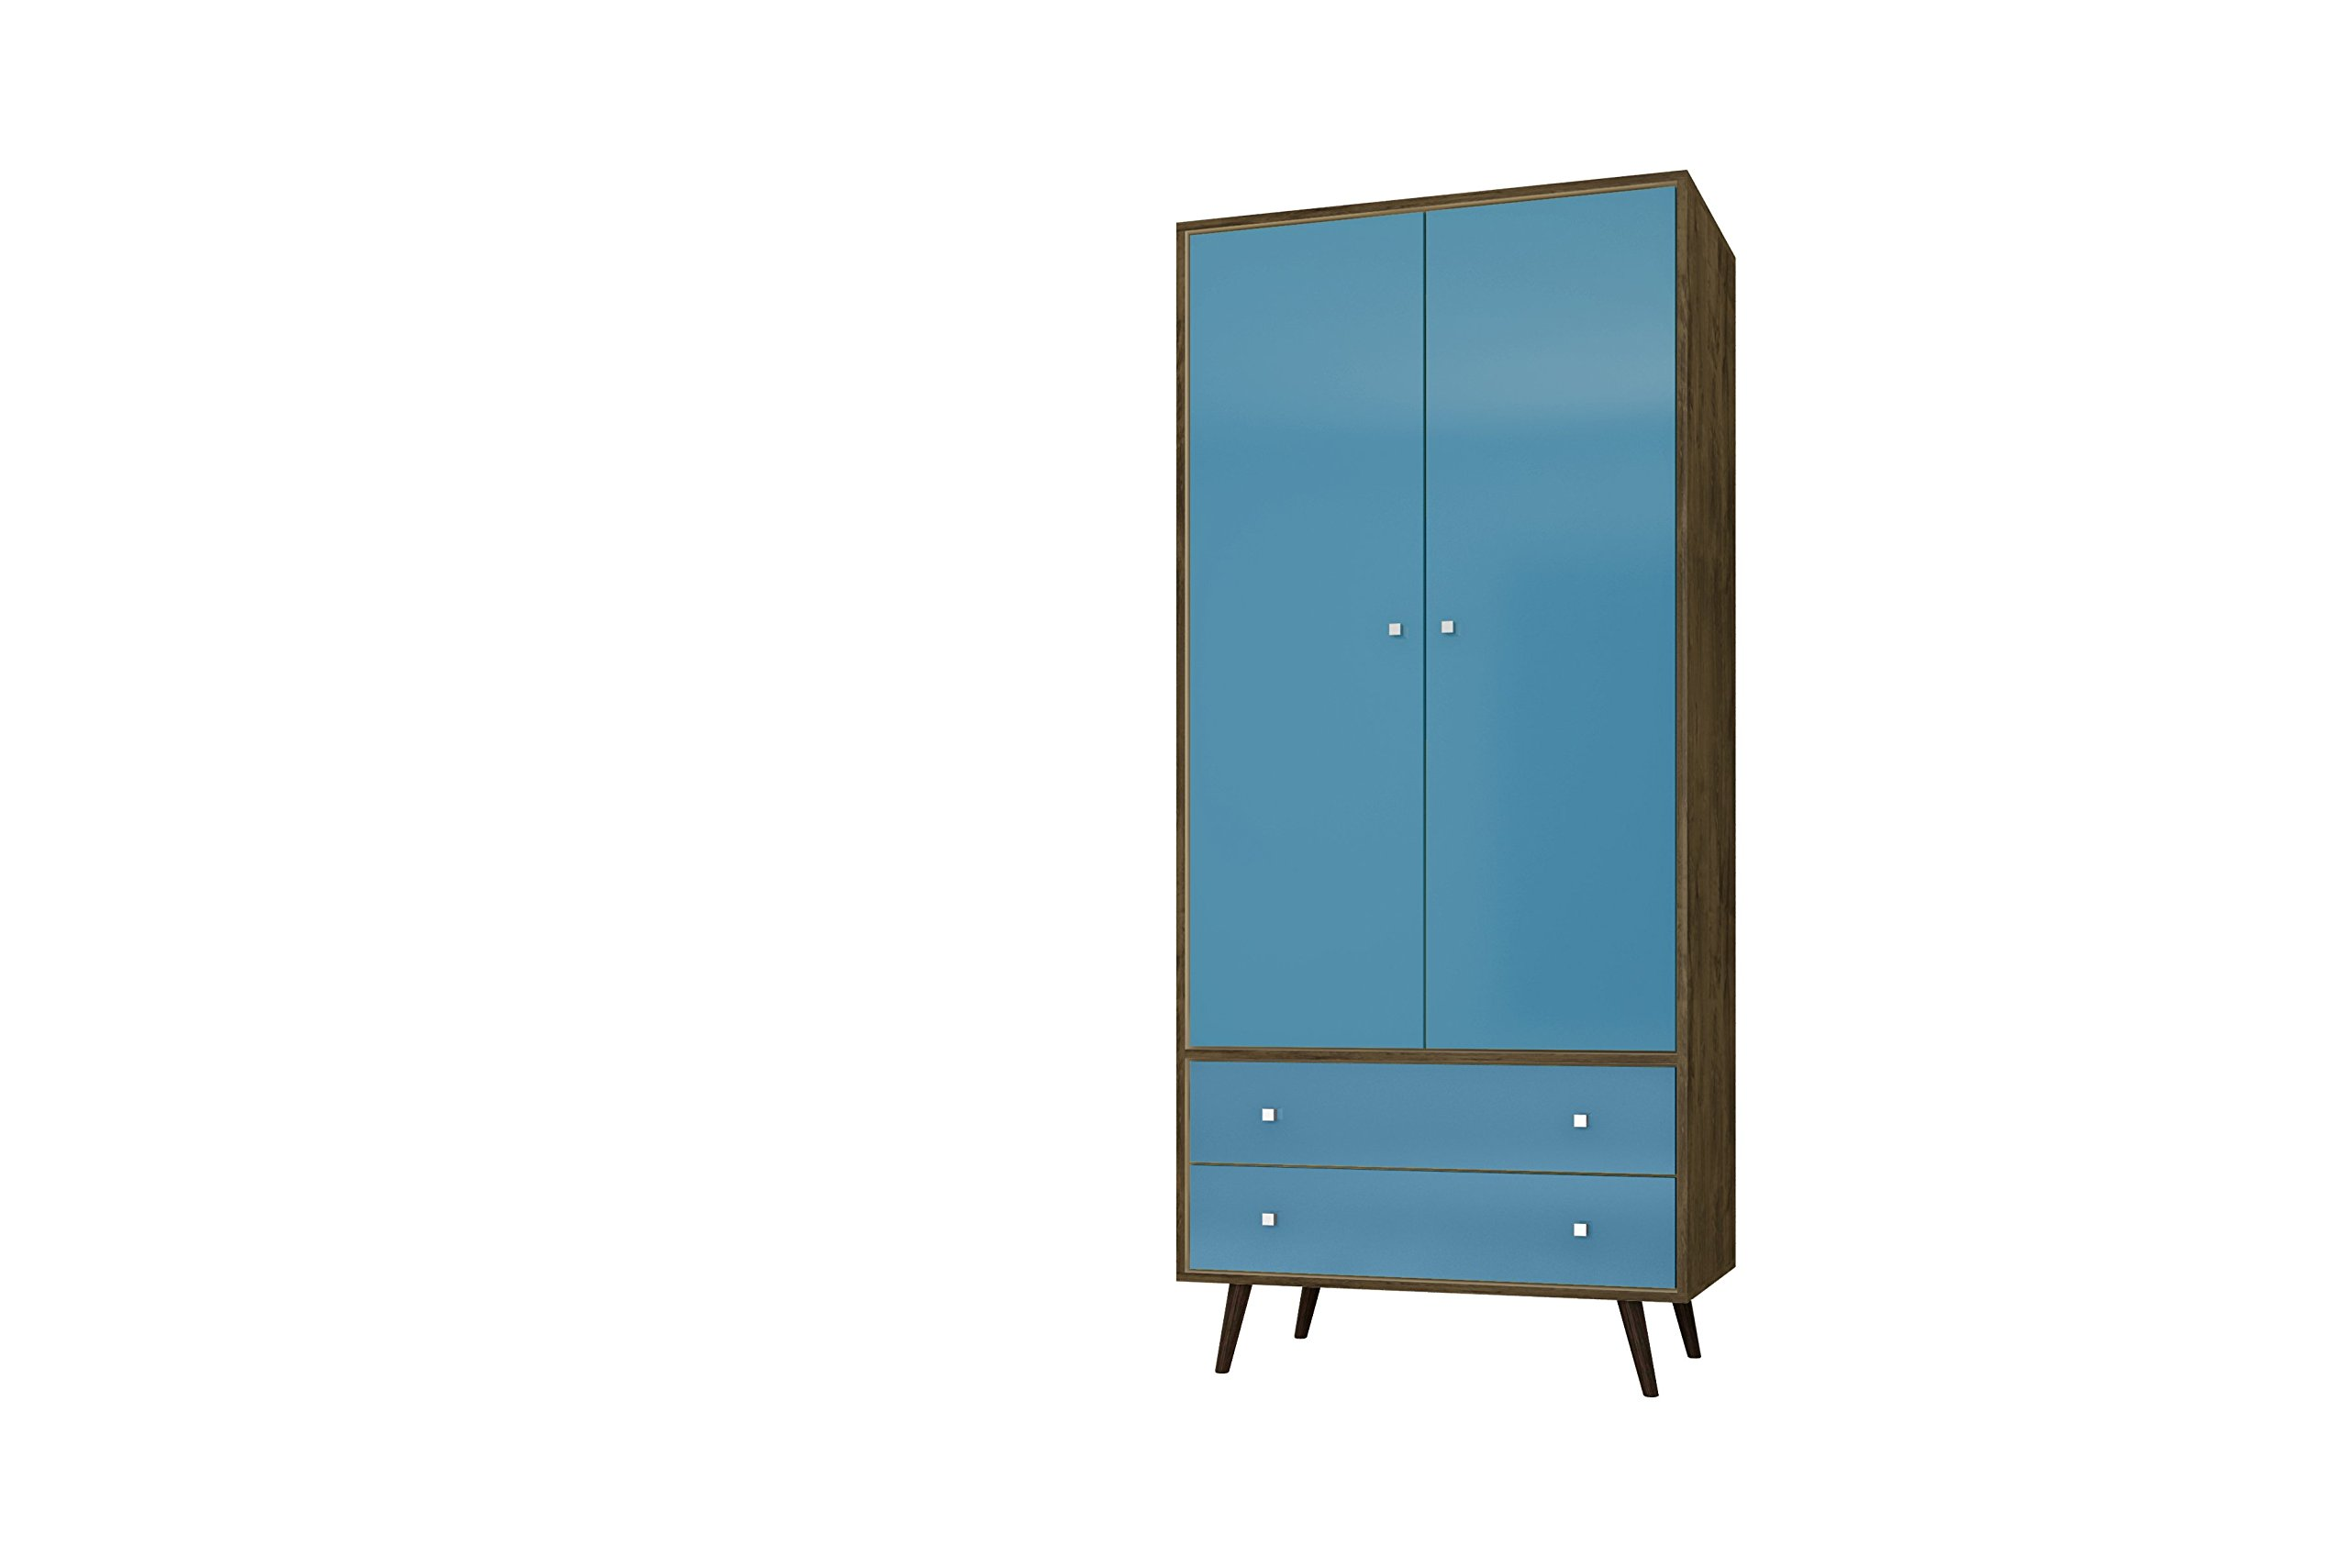 Manhattan Comfort Liberty Collection Mid Century Modern Armoire Closet With Two Cabinets and Two Drawers, Teal/Wood